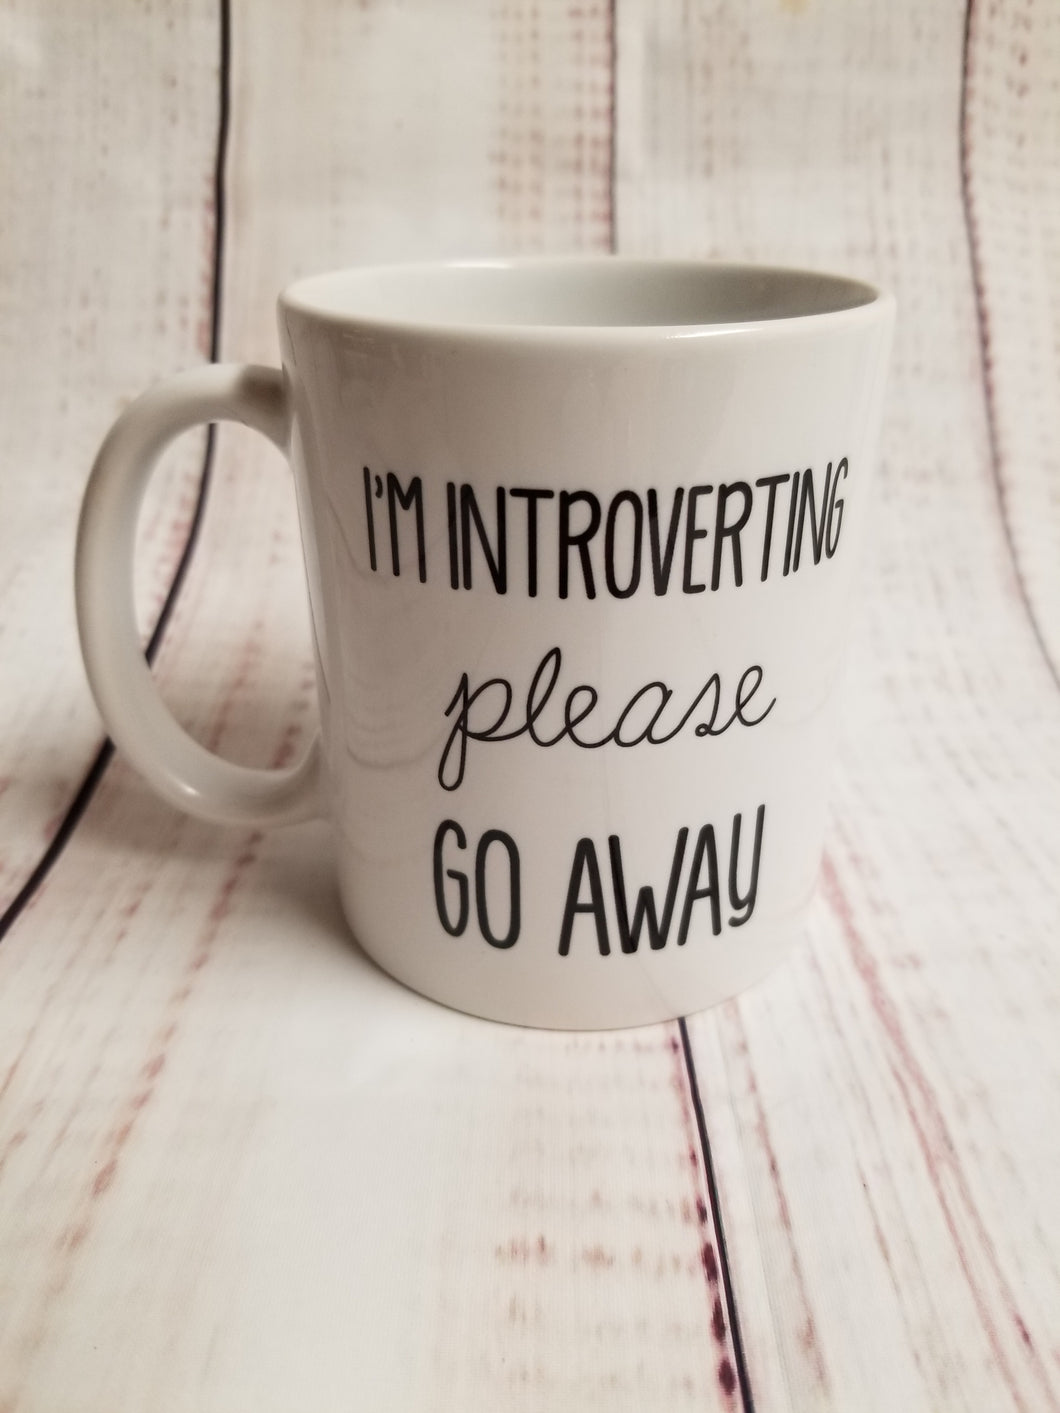 I'm introverting please go away mug - My Other Child